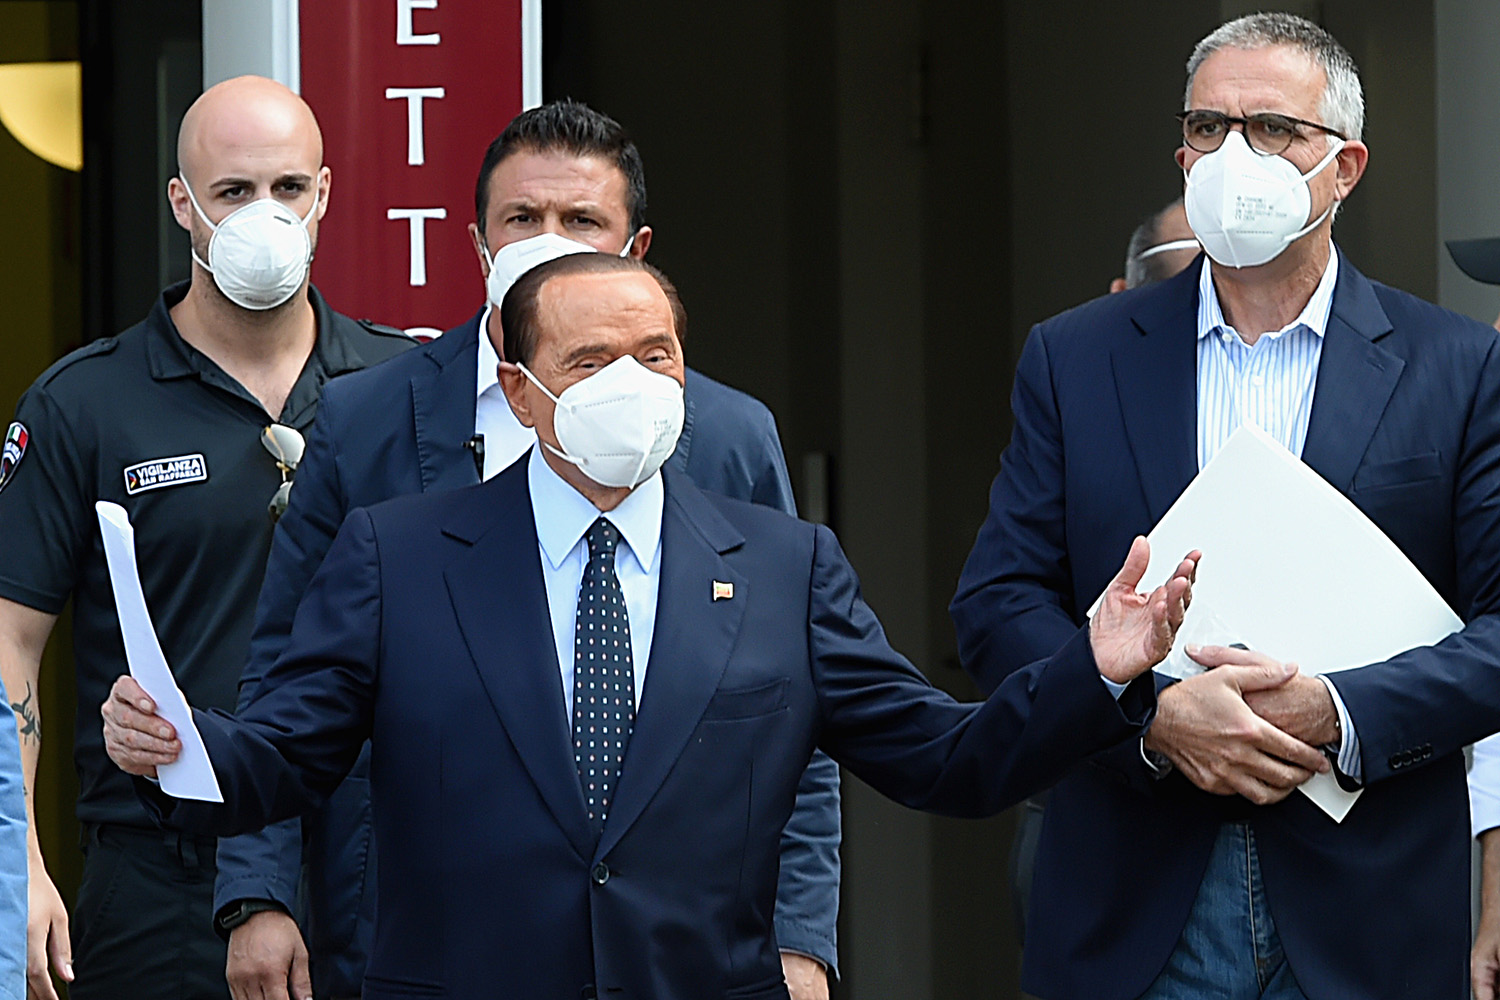 Former Italian Prime Minister Silvio Berlusconi is discharged from the San Raffaele hospital in Milan on Sept. 14 after being treated for COVID-19.